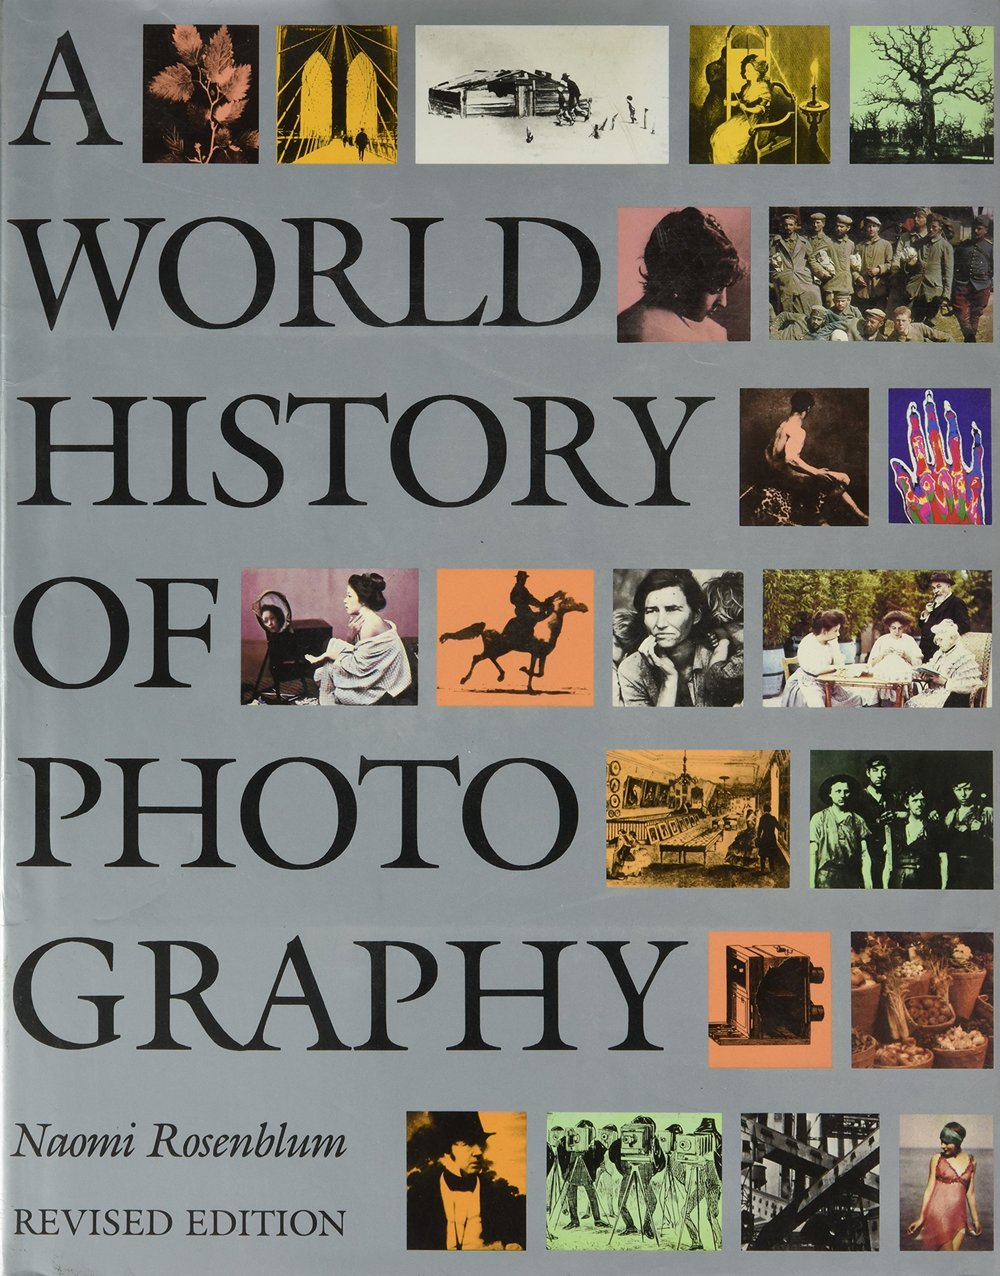 world-history-of-photography-bookcover.jpg